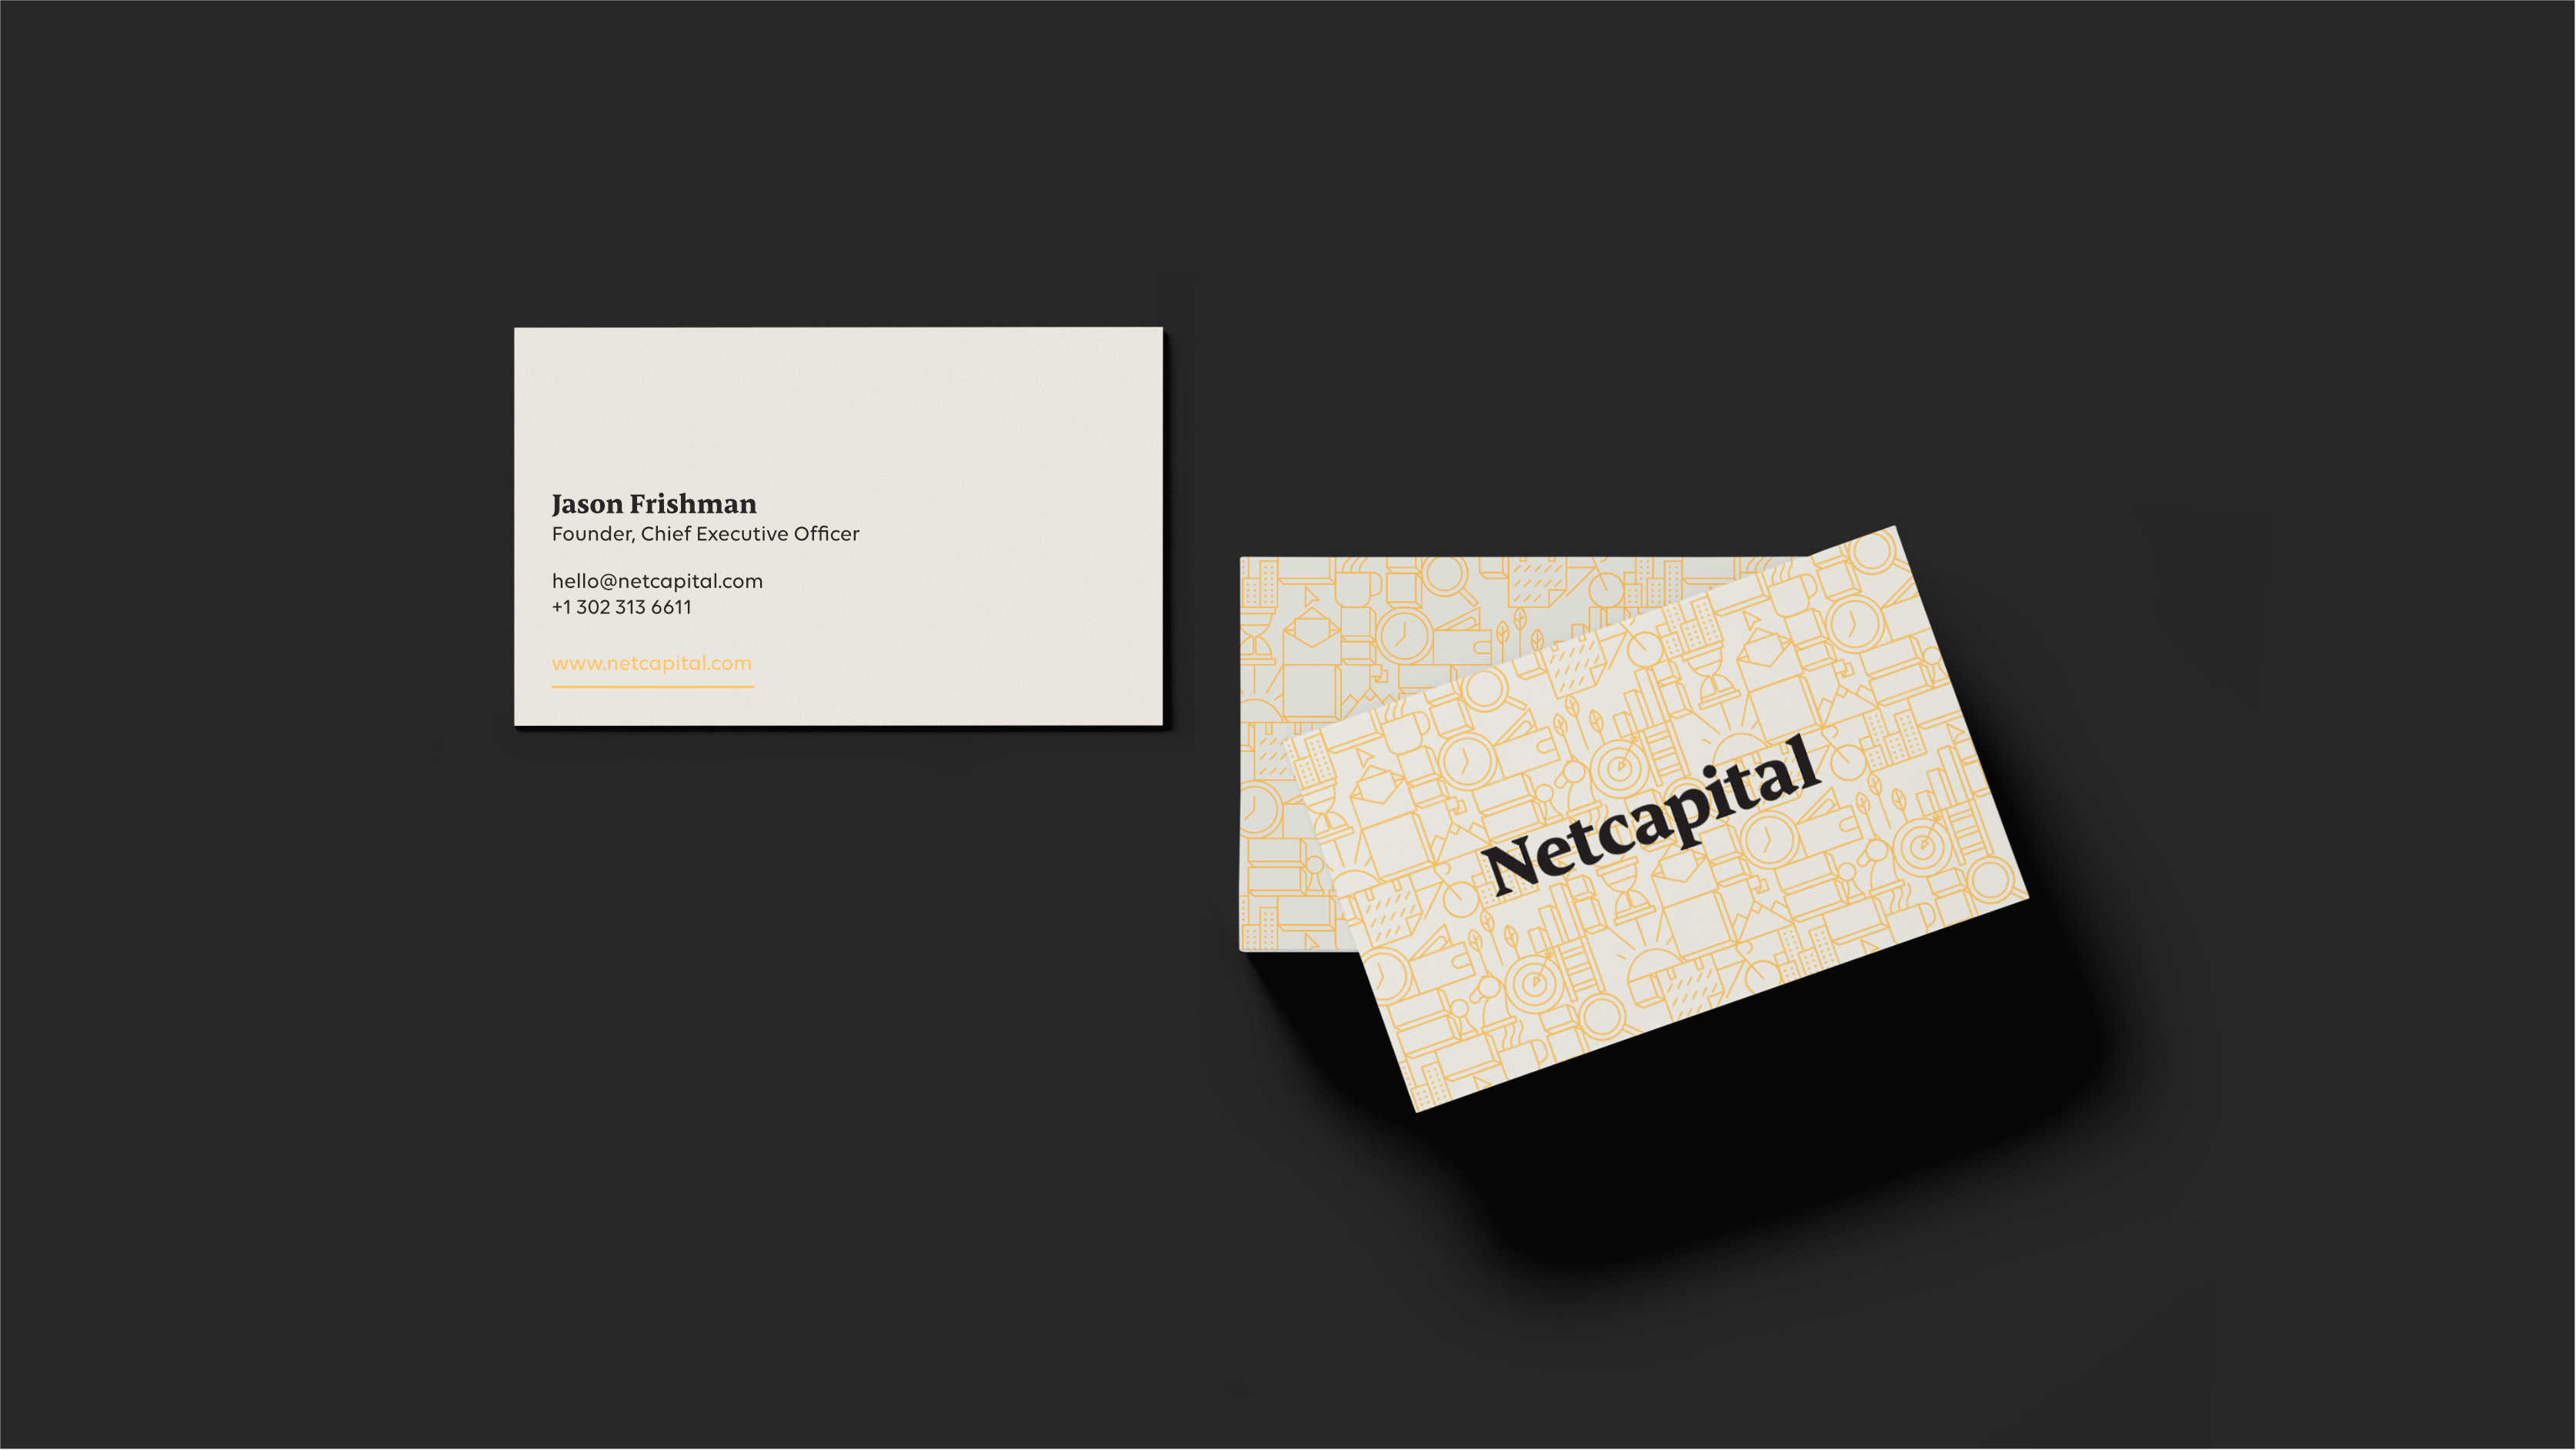 Netcapital Business Card Design